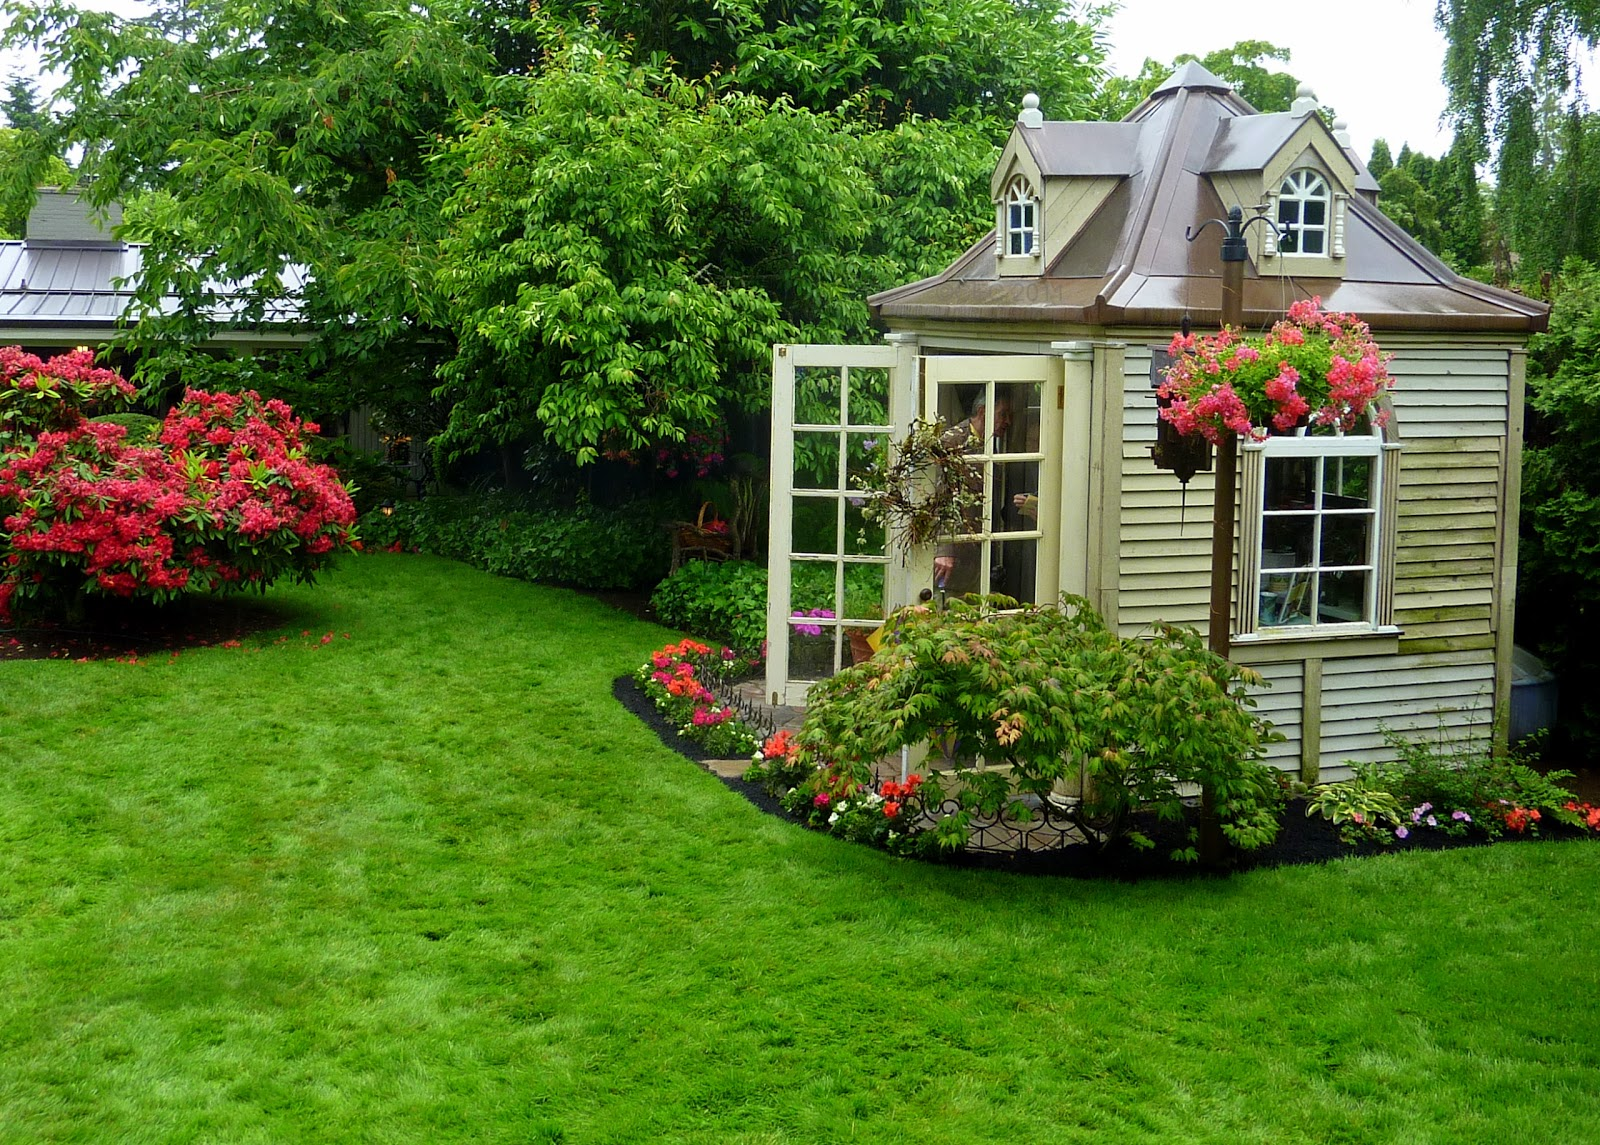 Gardener's Roost: Garden Tour in Seattle neighborhood